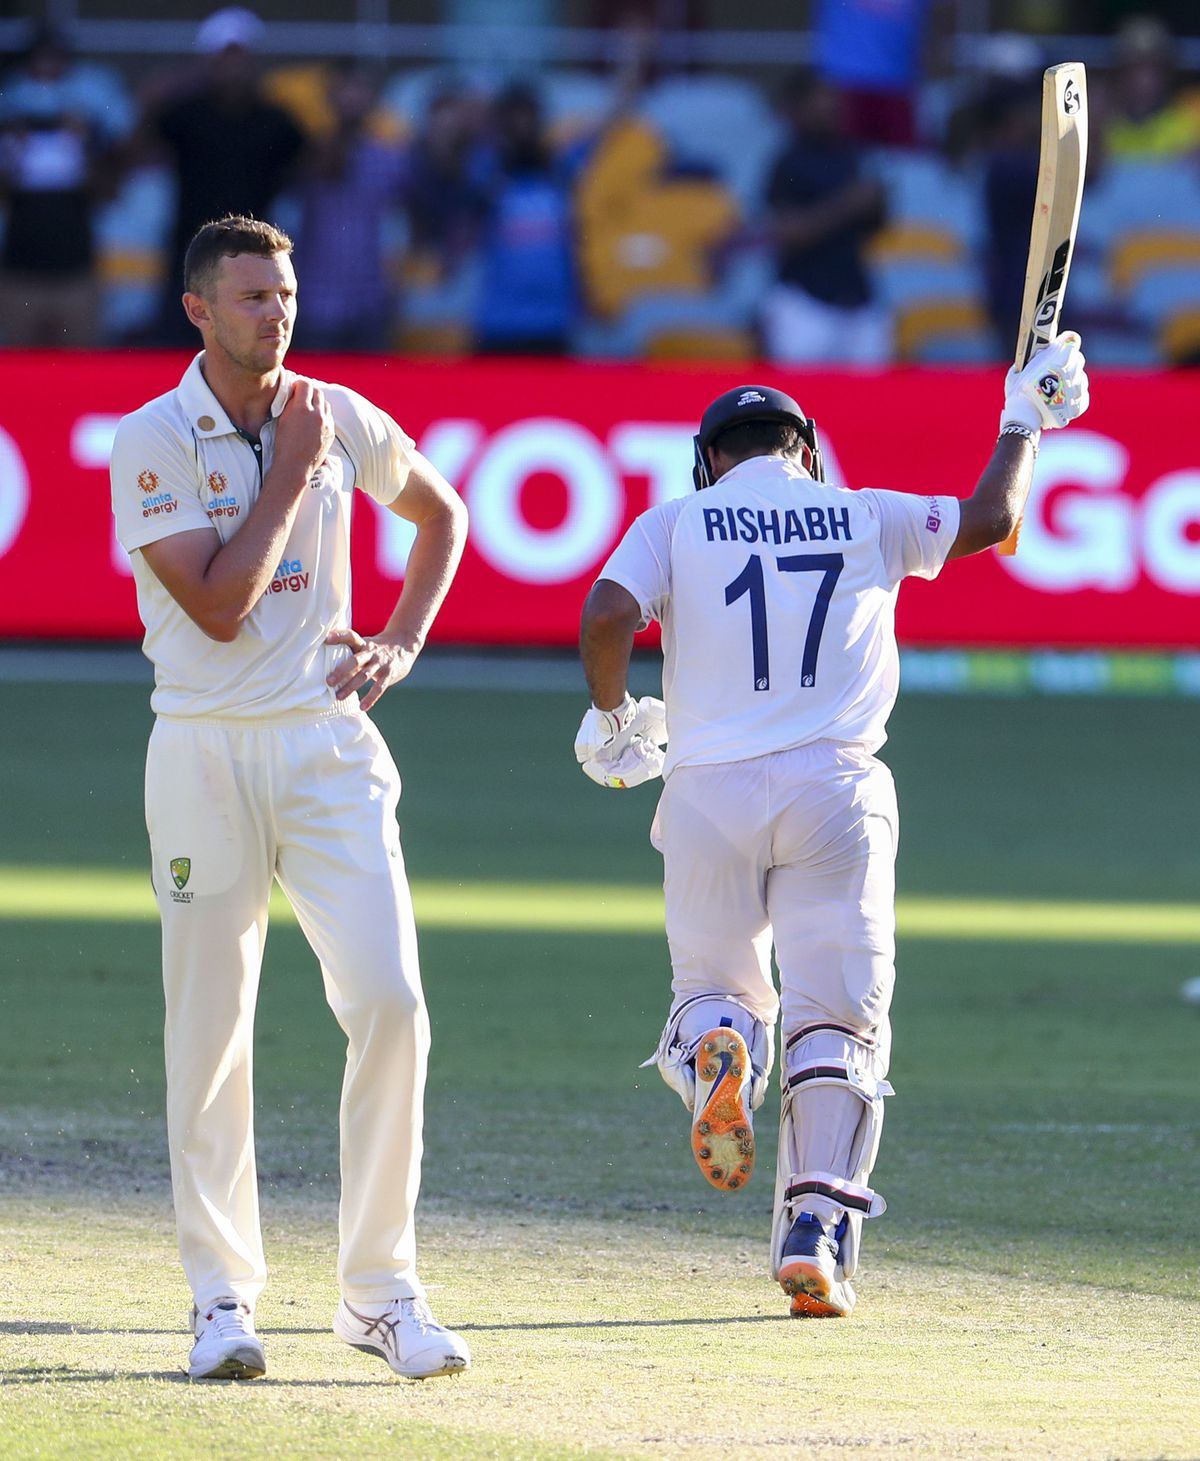 India's Rishabh Pant, right, celebrates after hitting the winning runs to defeat Australia by three wickets on the final day of the fourth cricket test at the Gabba